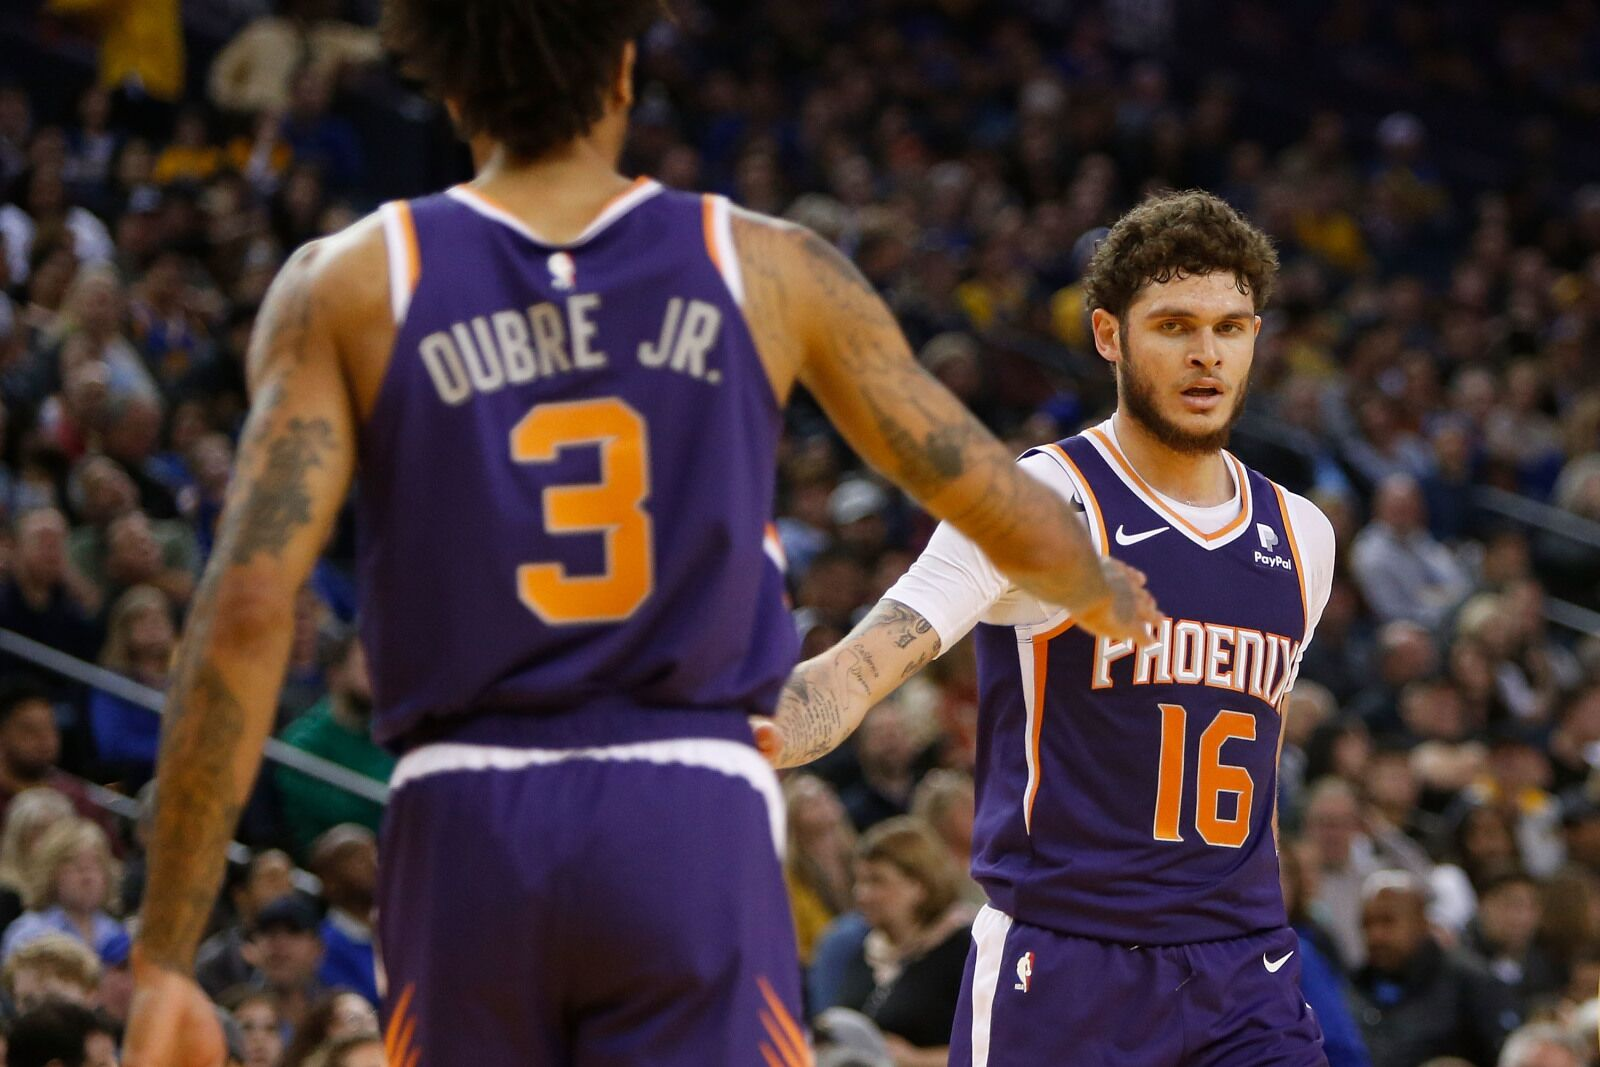 The Phoenix Suns got away with theft twice this season